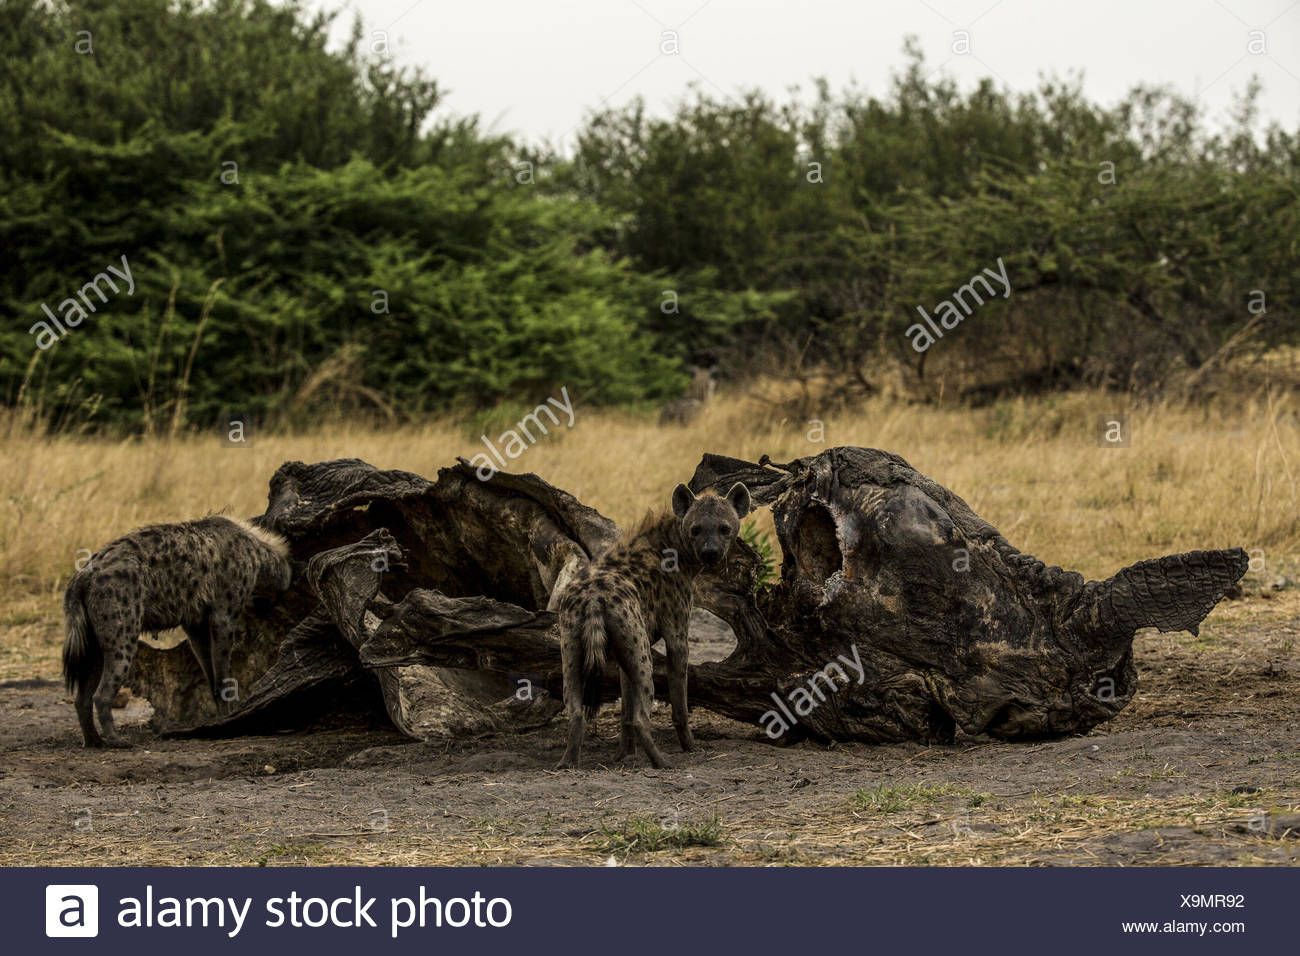 Spotted Hyena, Crocuta crocuta, eat from a old and dry elephant, Loxodonta africana, carcass. - Stock Image